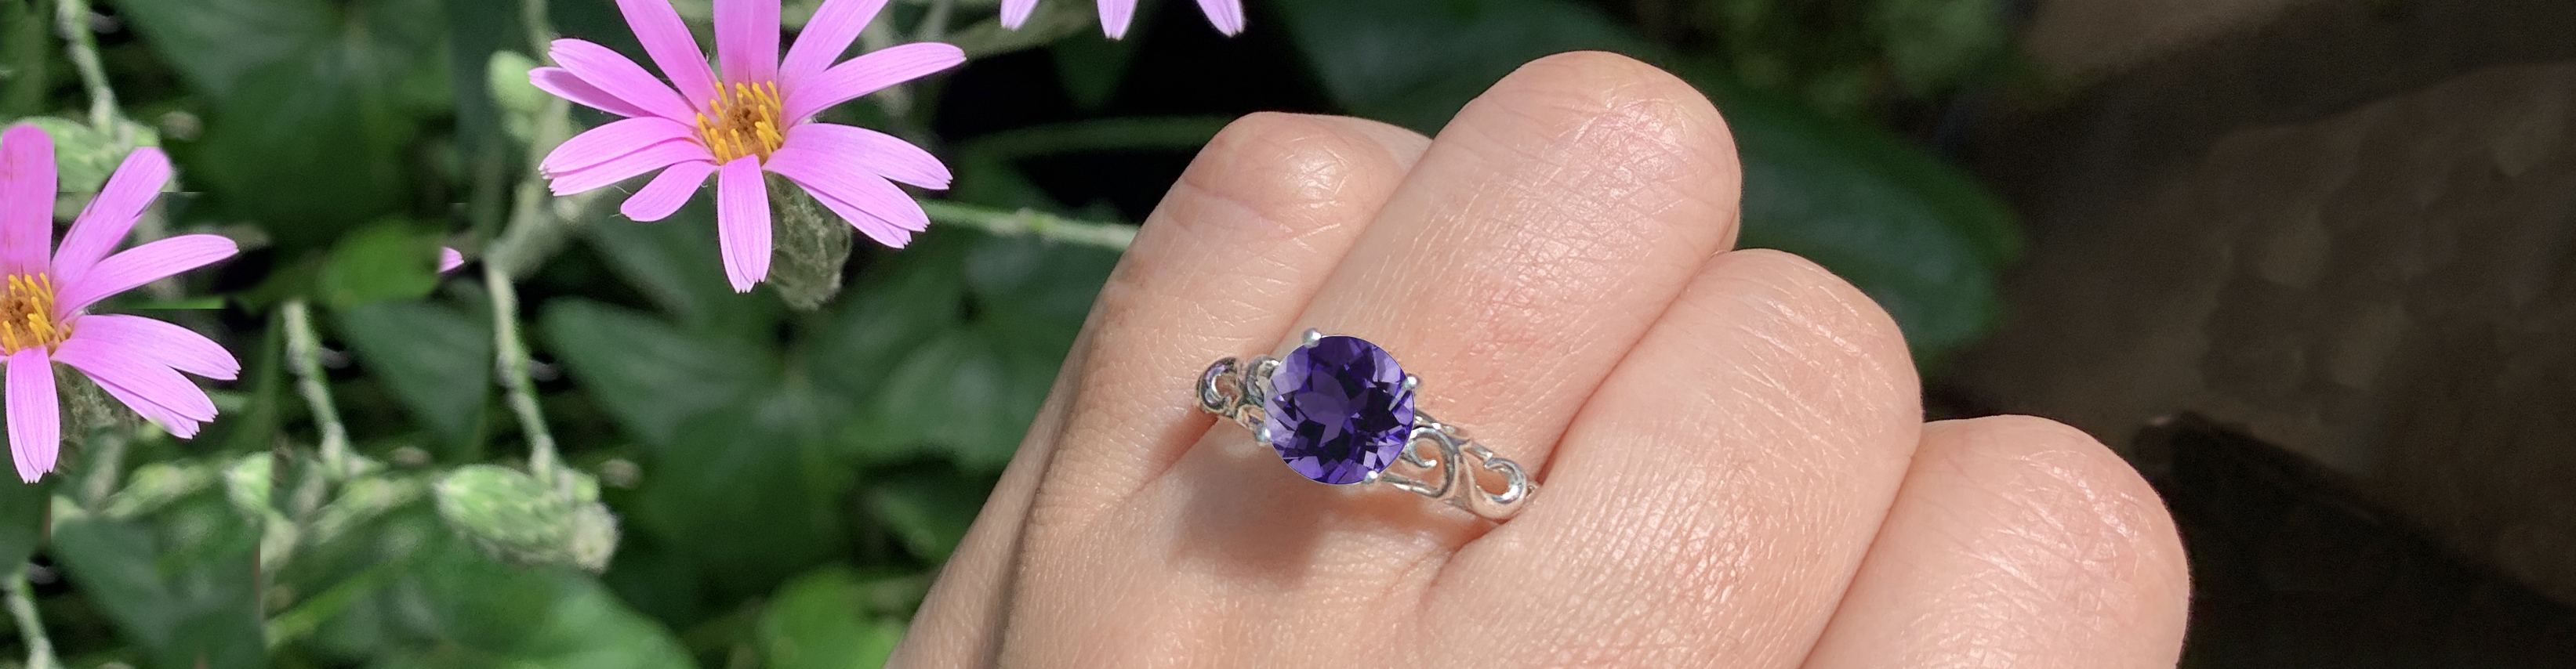 Amethyst Scroll Solitaire Engagement Ring on Hand